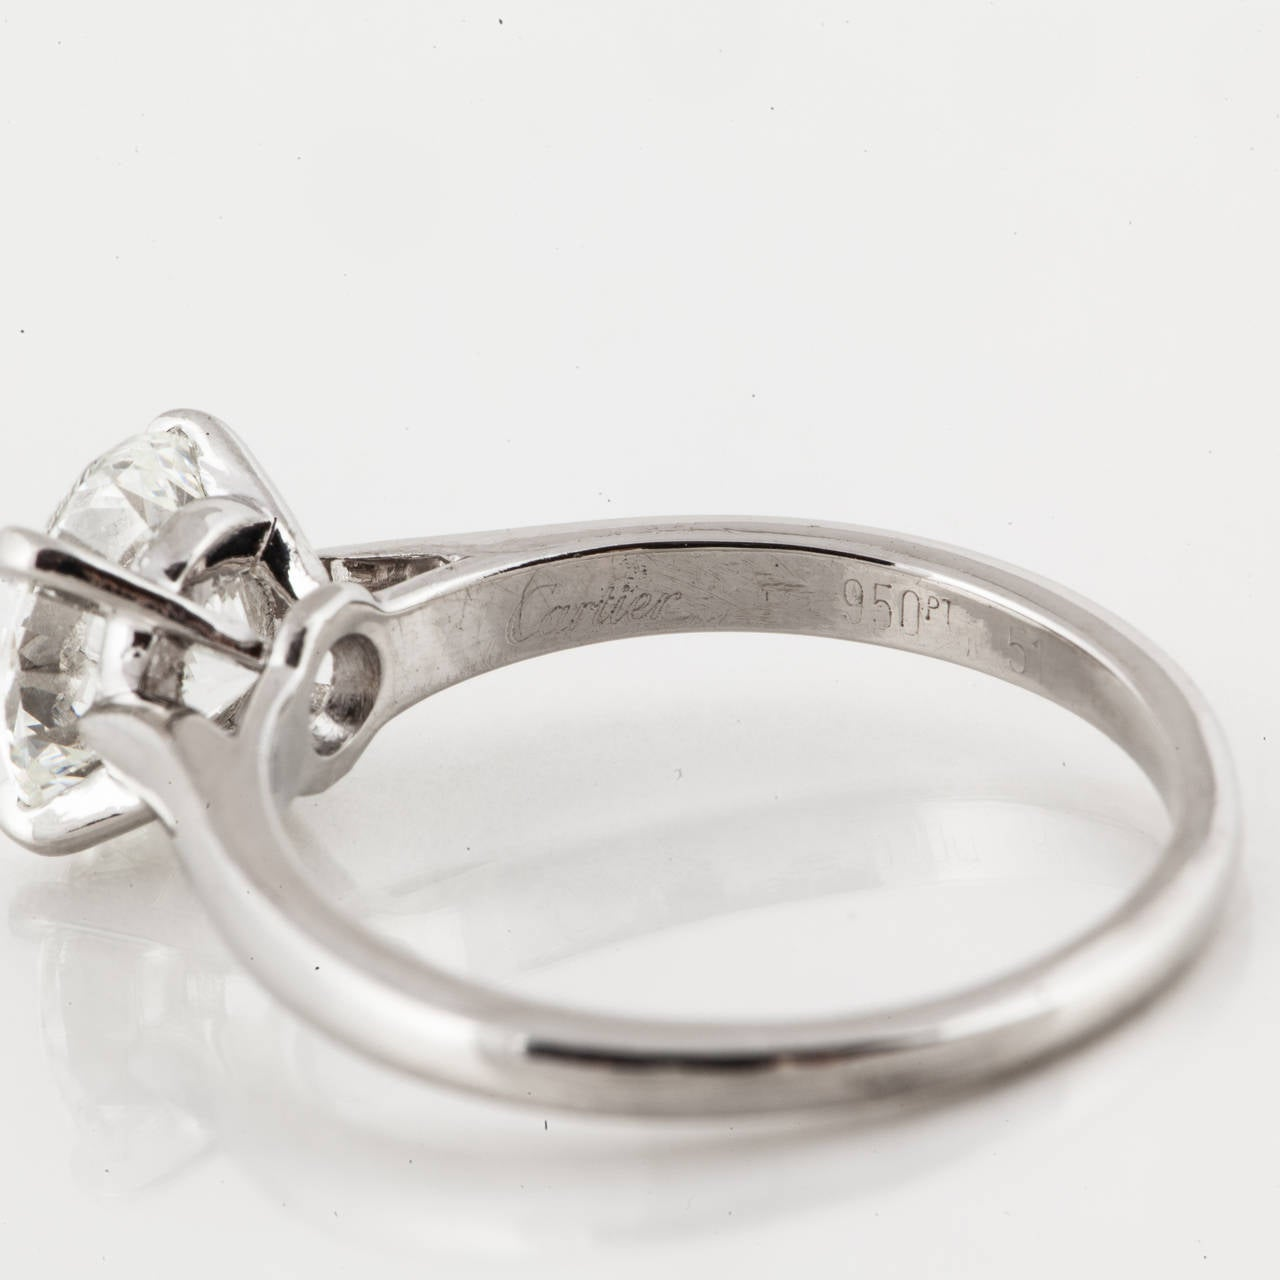 Cartier GIA Certified Diamond Platinum Solitaire Ring For Sale 1